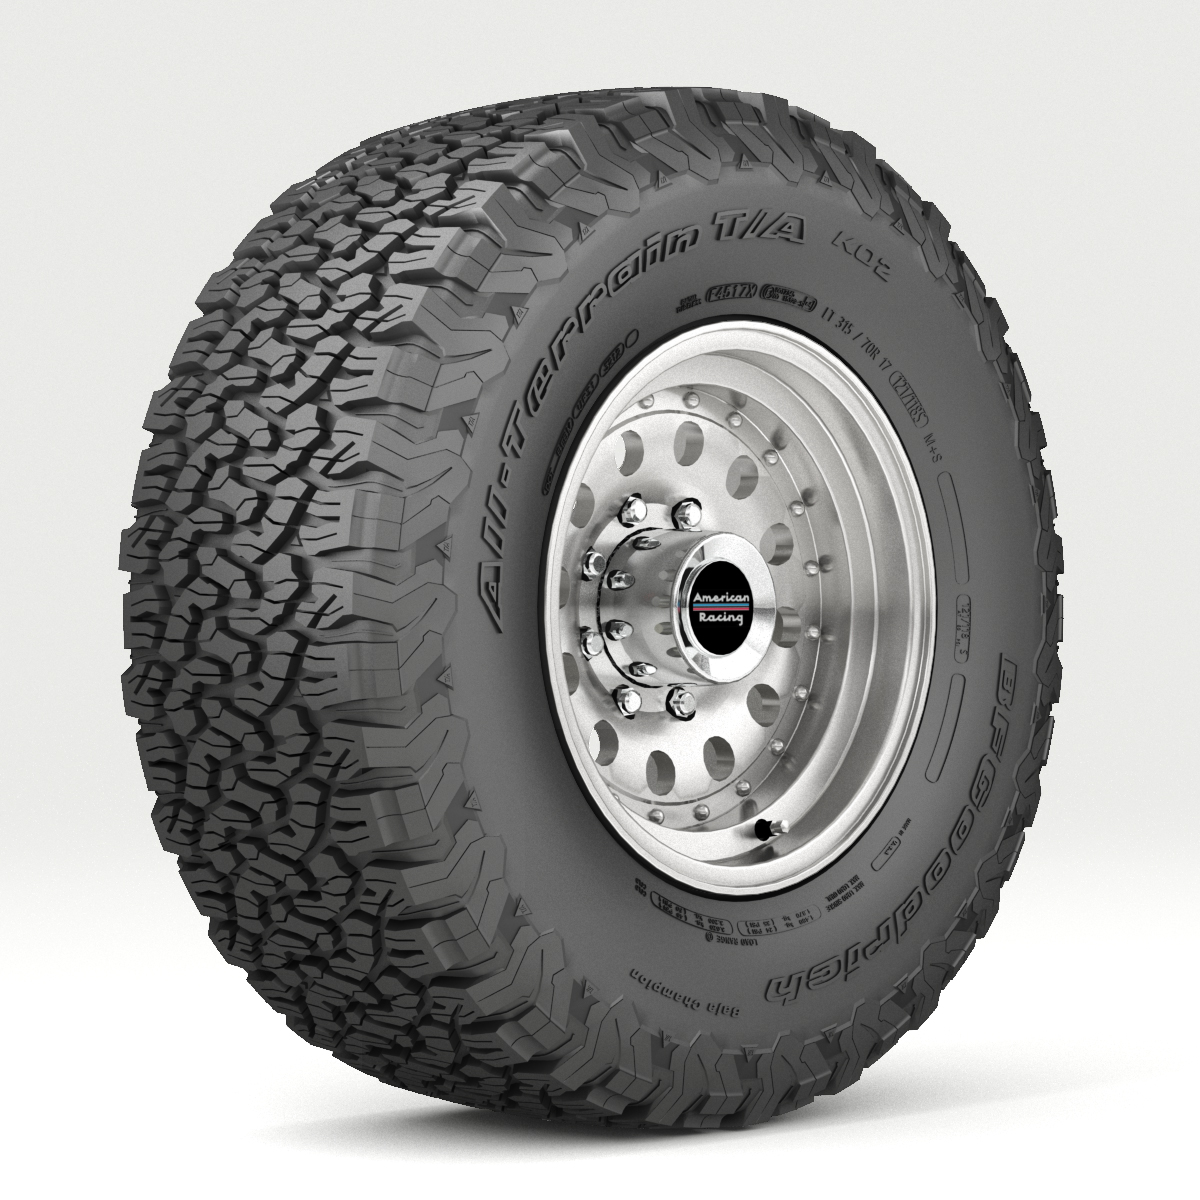 off road wheel at gulong 5 3d modelo 3ds max fbx tga targa icb vda vst pix obj 224470